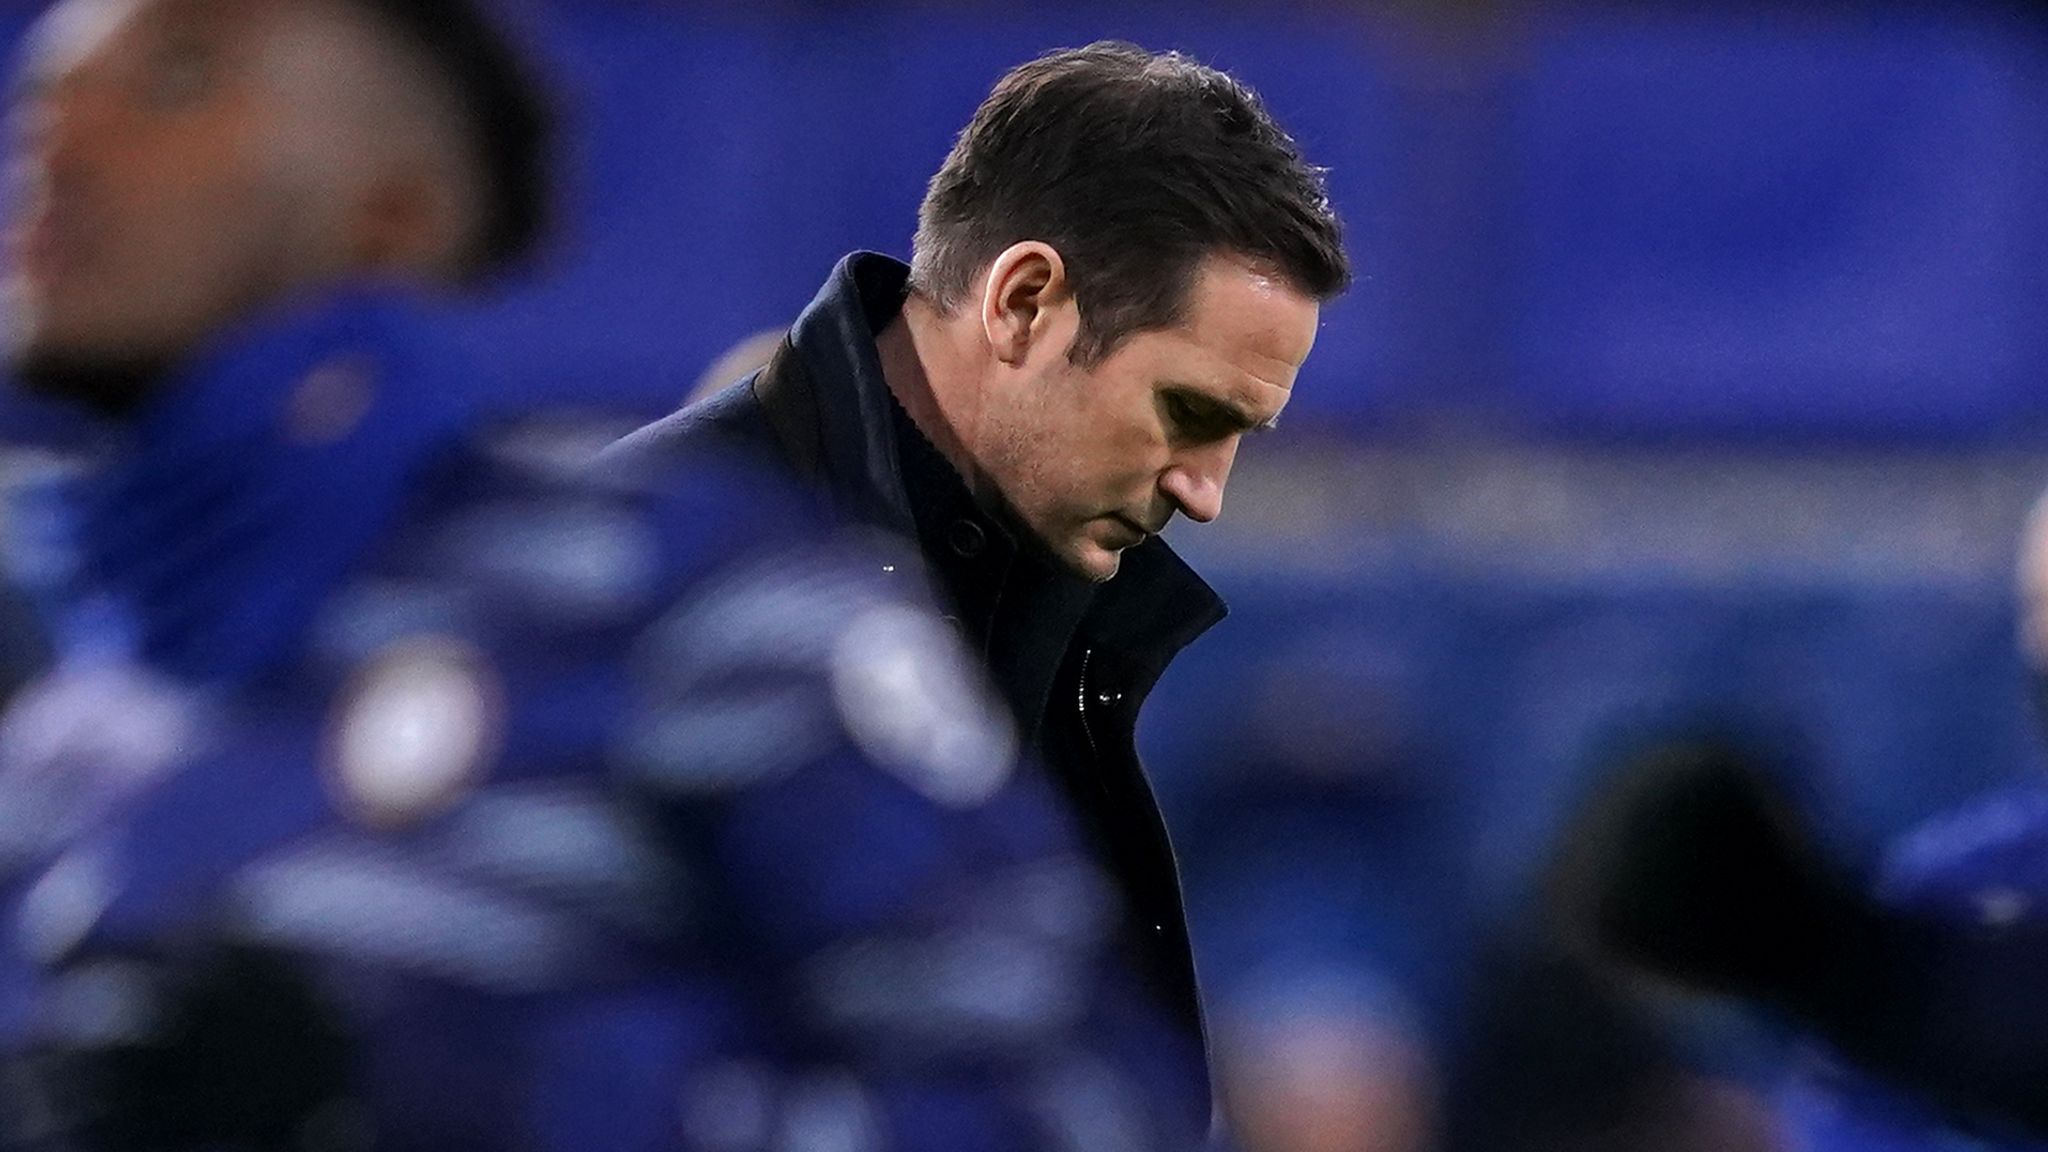 Breaking News: Chelsea have fired manager Frank Lampard